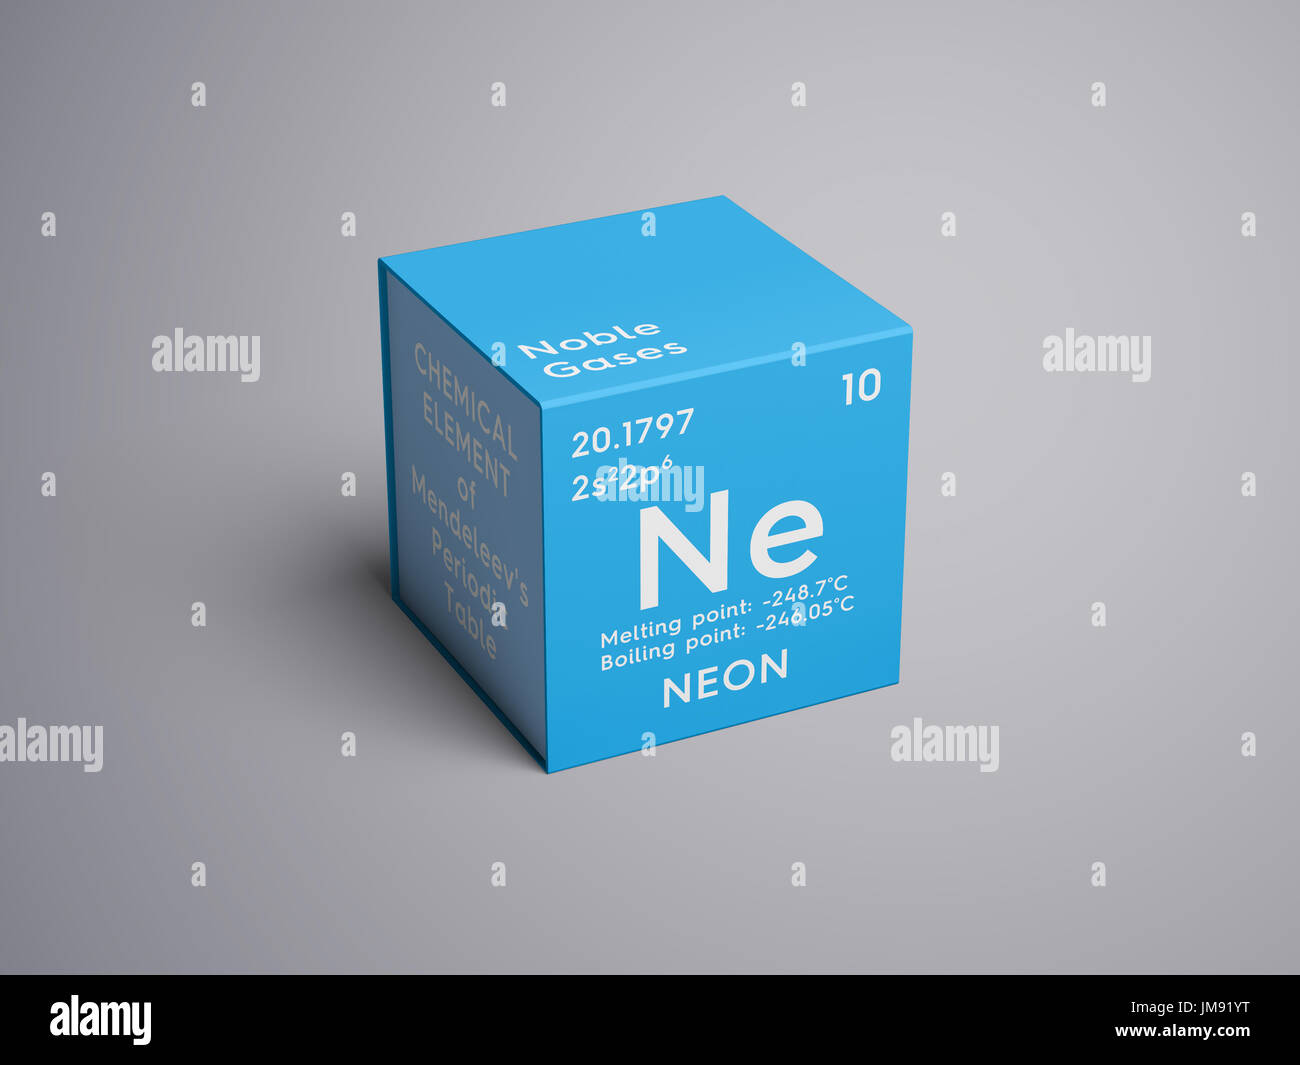 Neon noble gases chemical element of mendeleevs periodic table chemical element of mendeleevs periodic table neon in square cube creative concept urtaz Image collections